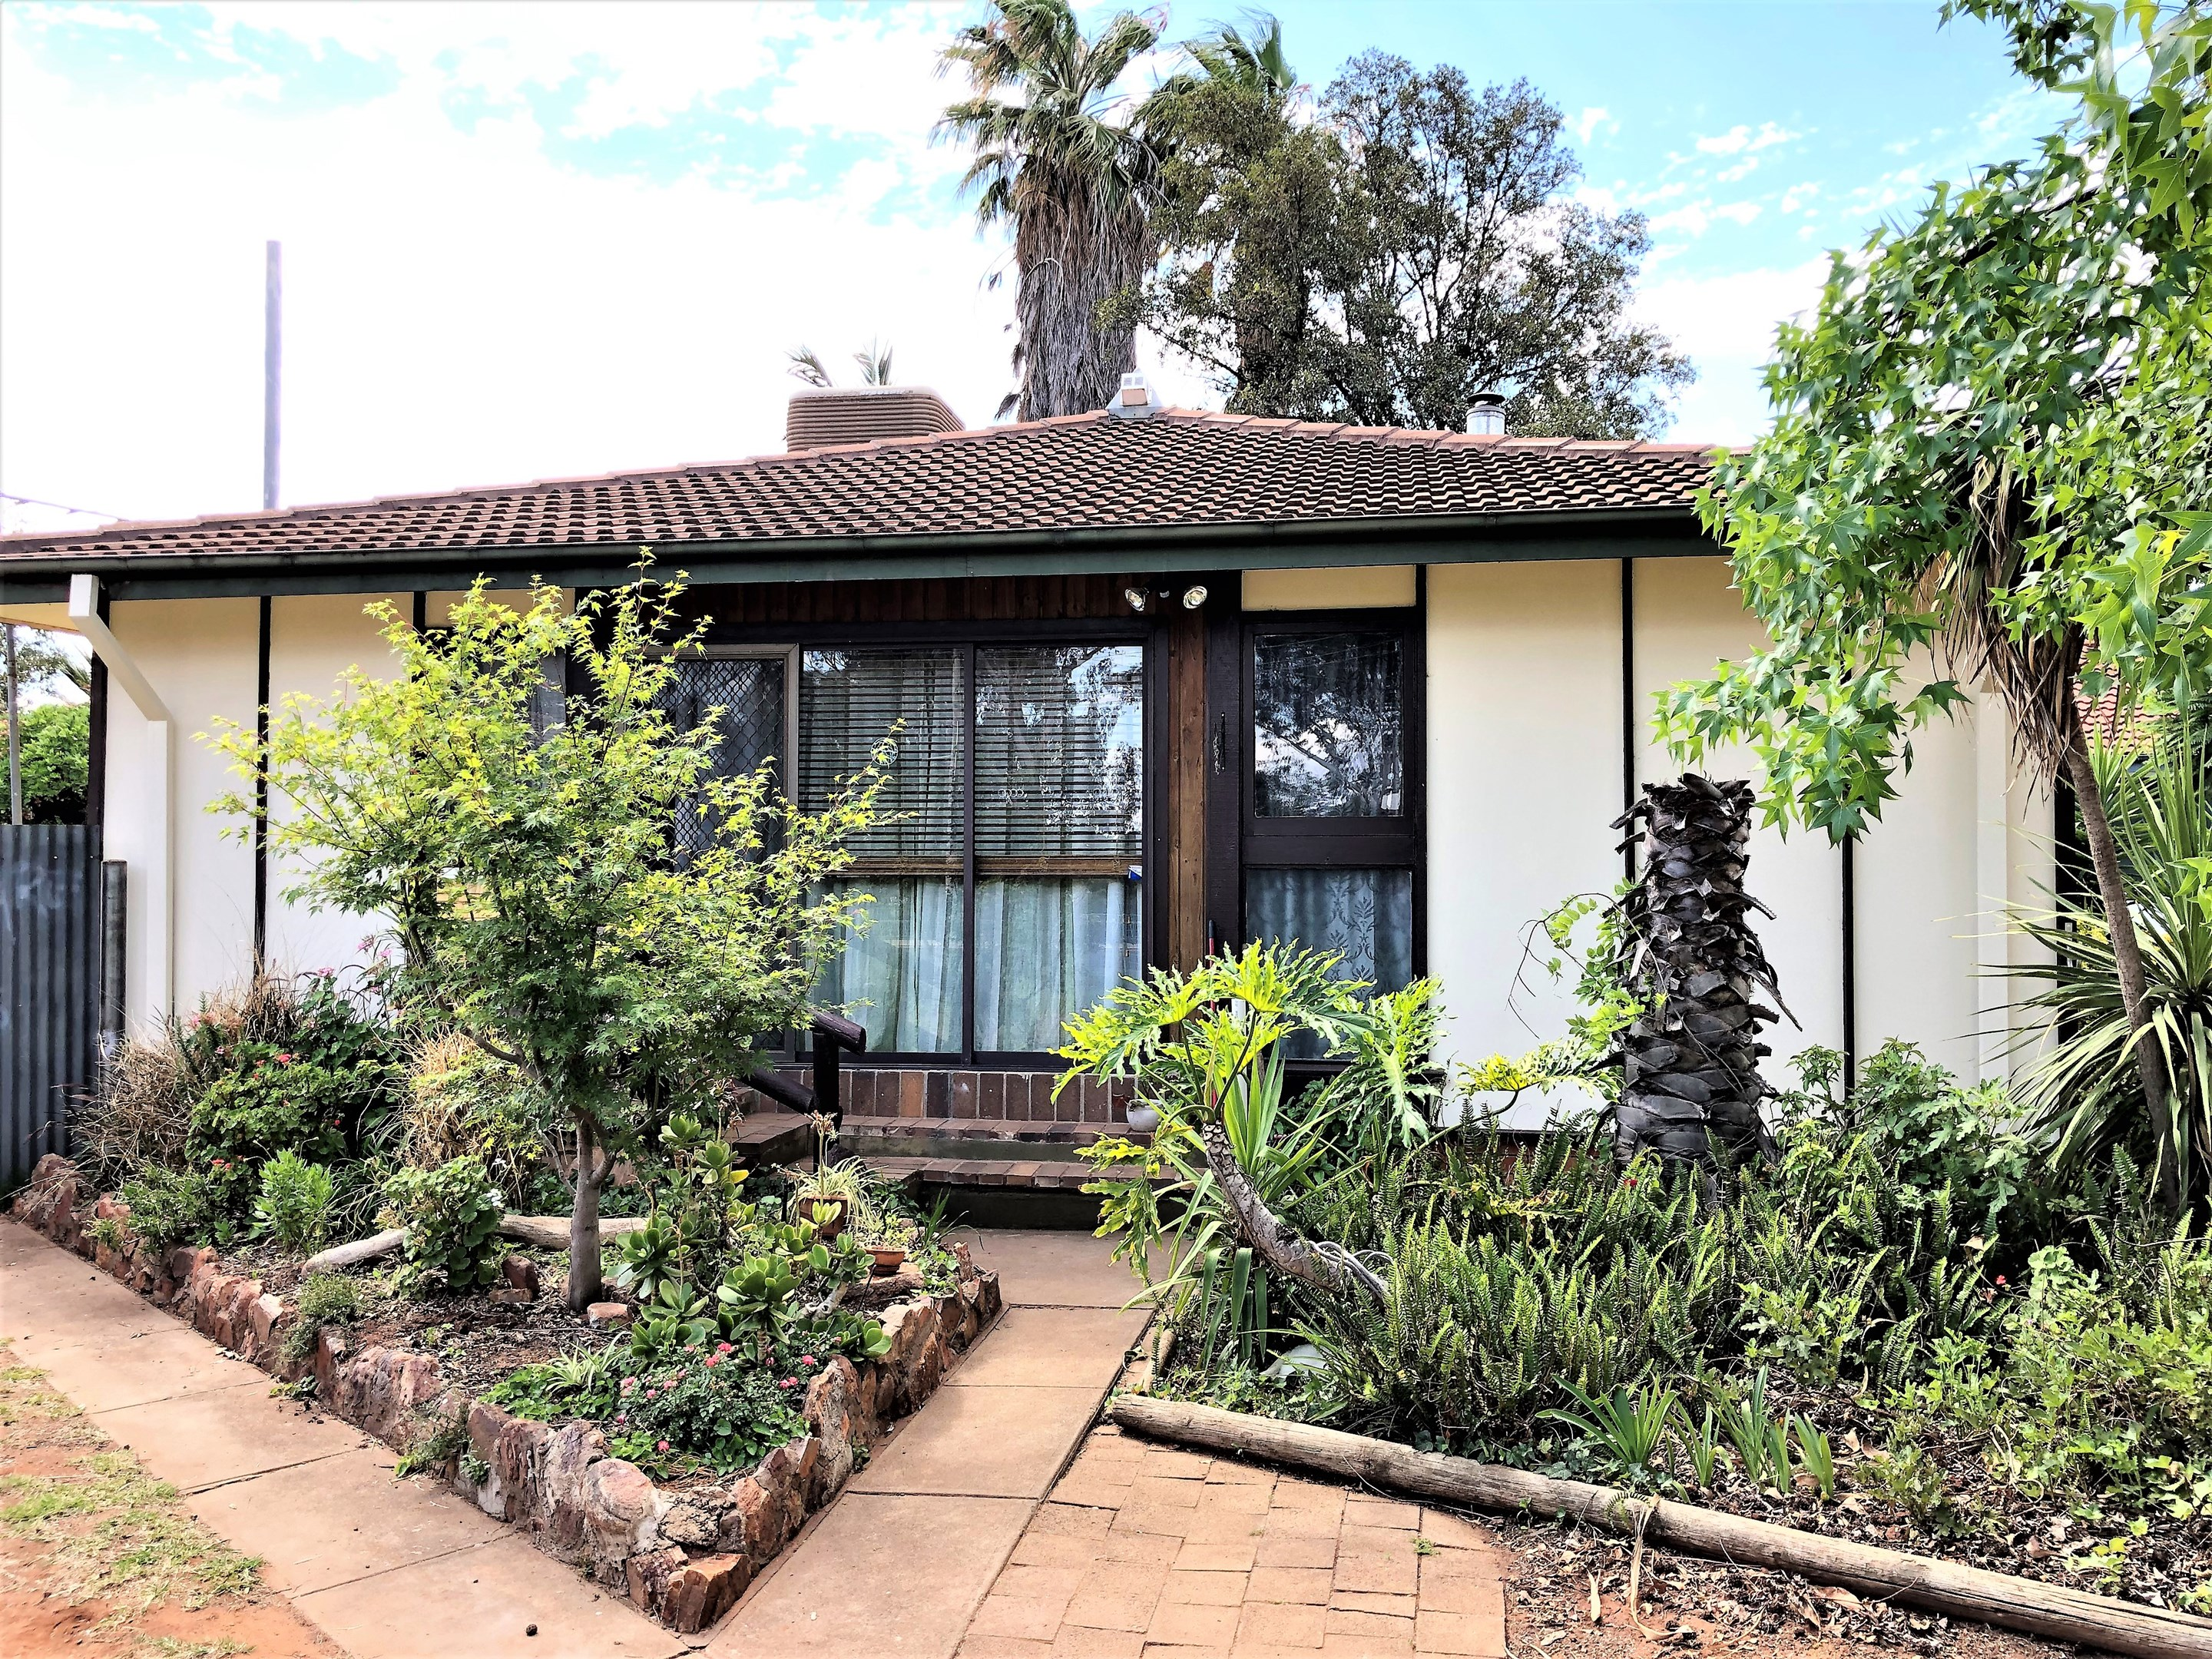 Property Report for 4 Ledgerwood Street, Griffith NSW 2680